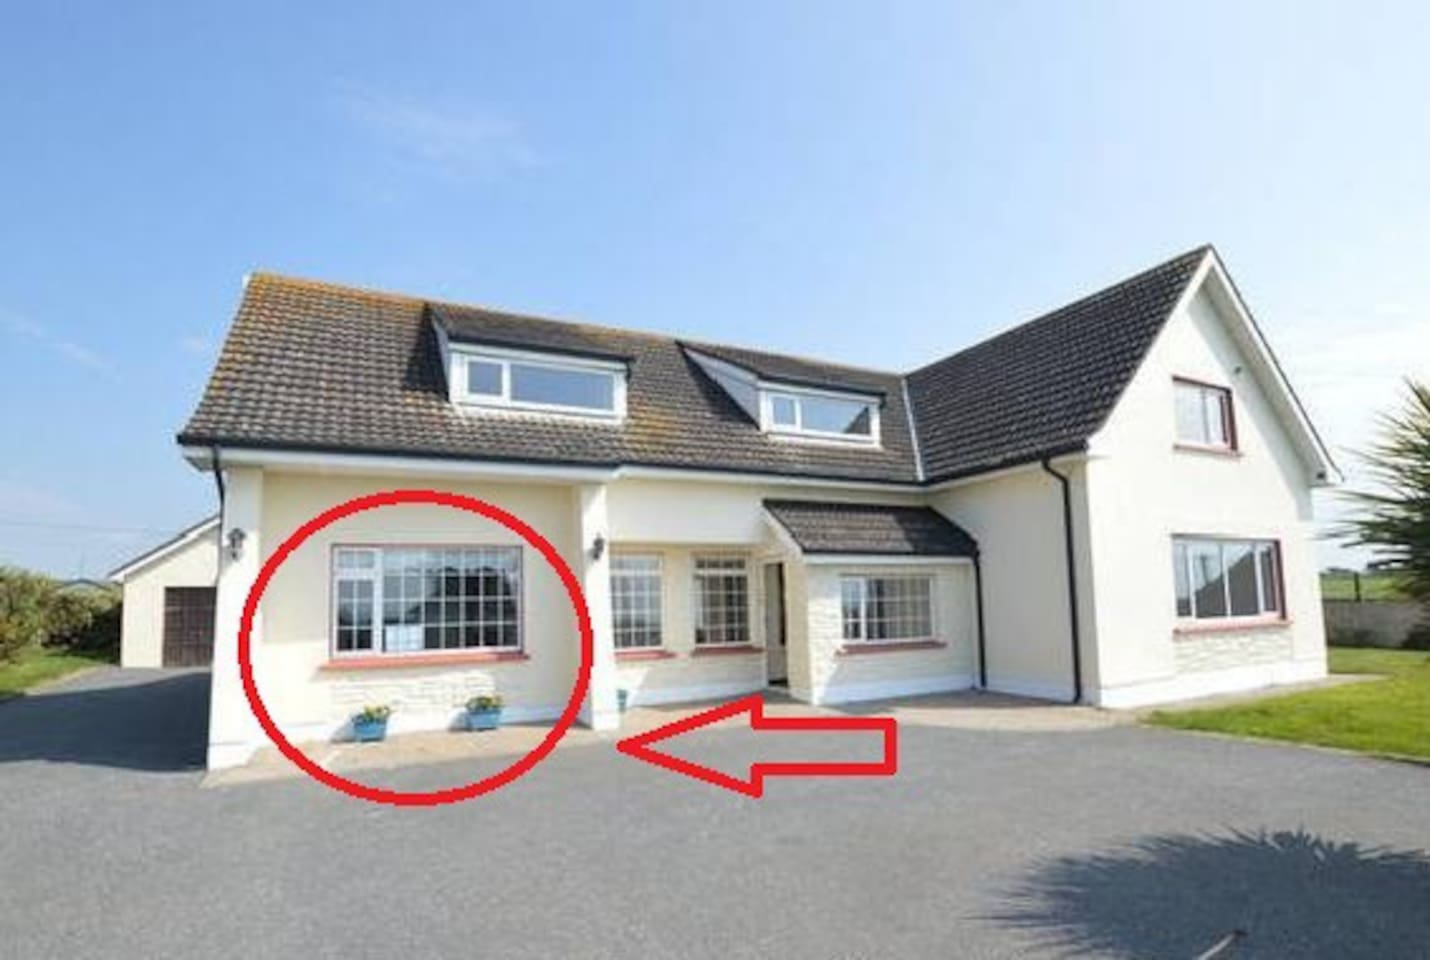 Benvoy House apartment - within the red circle. Private entrance is at the rear with ample parking